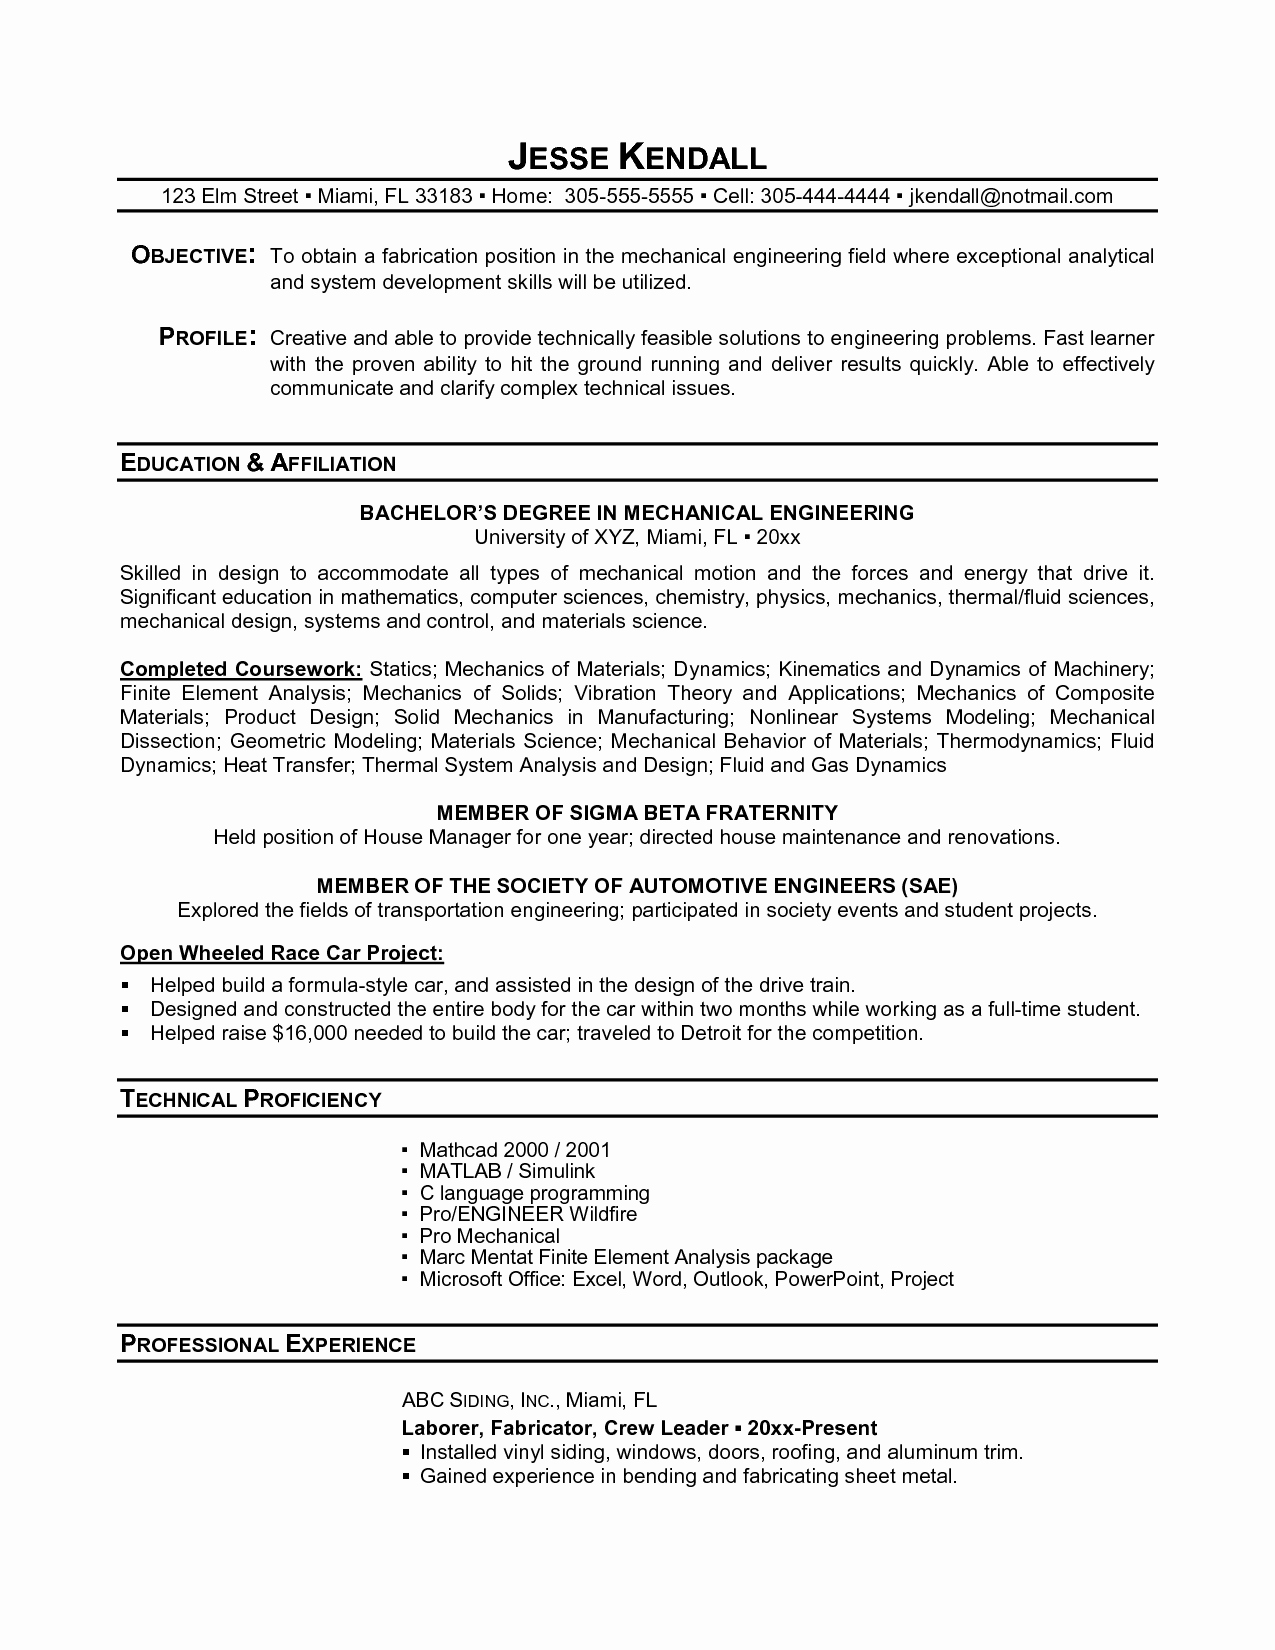 Cv Samples for Students Lovely Resume Examples Student Examples Collge High School